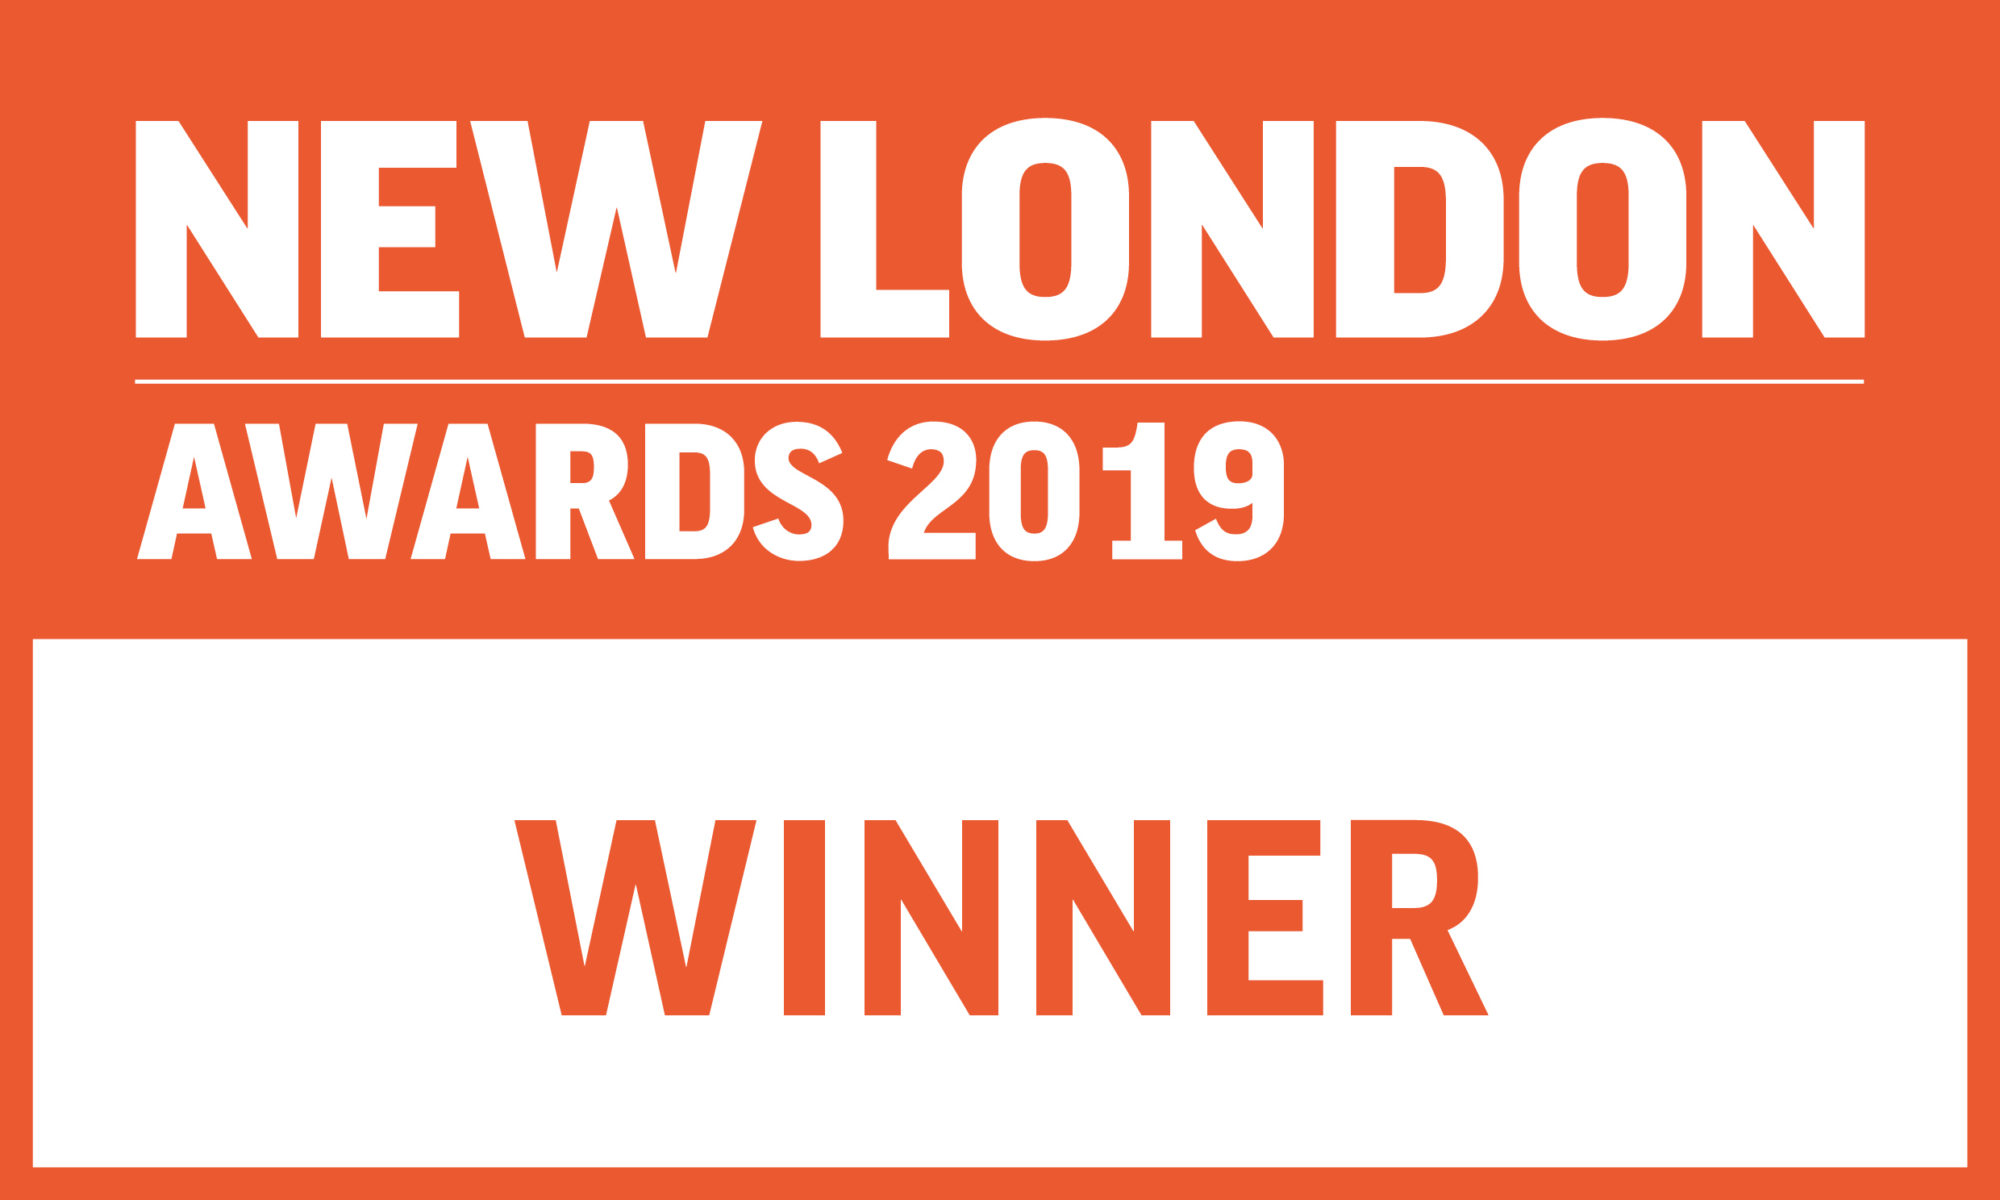 John Burns wins New Londoner of the Year award 2019